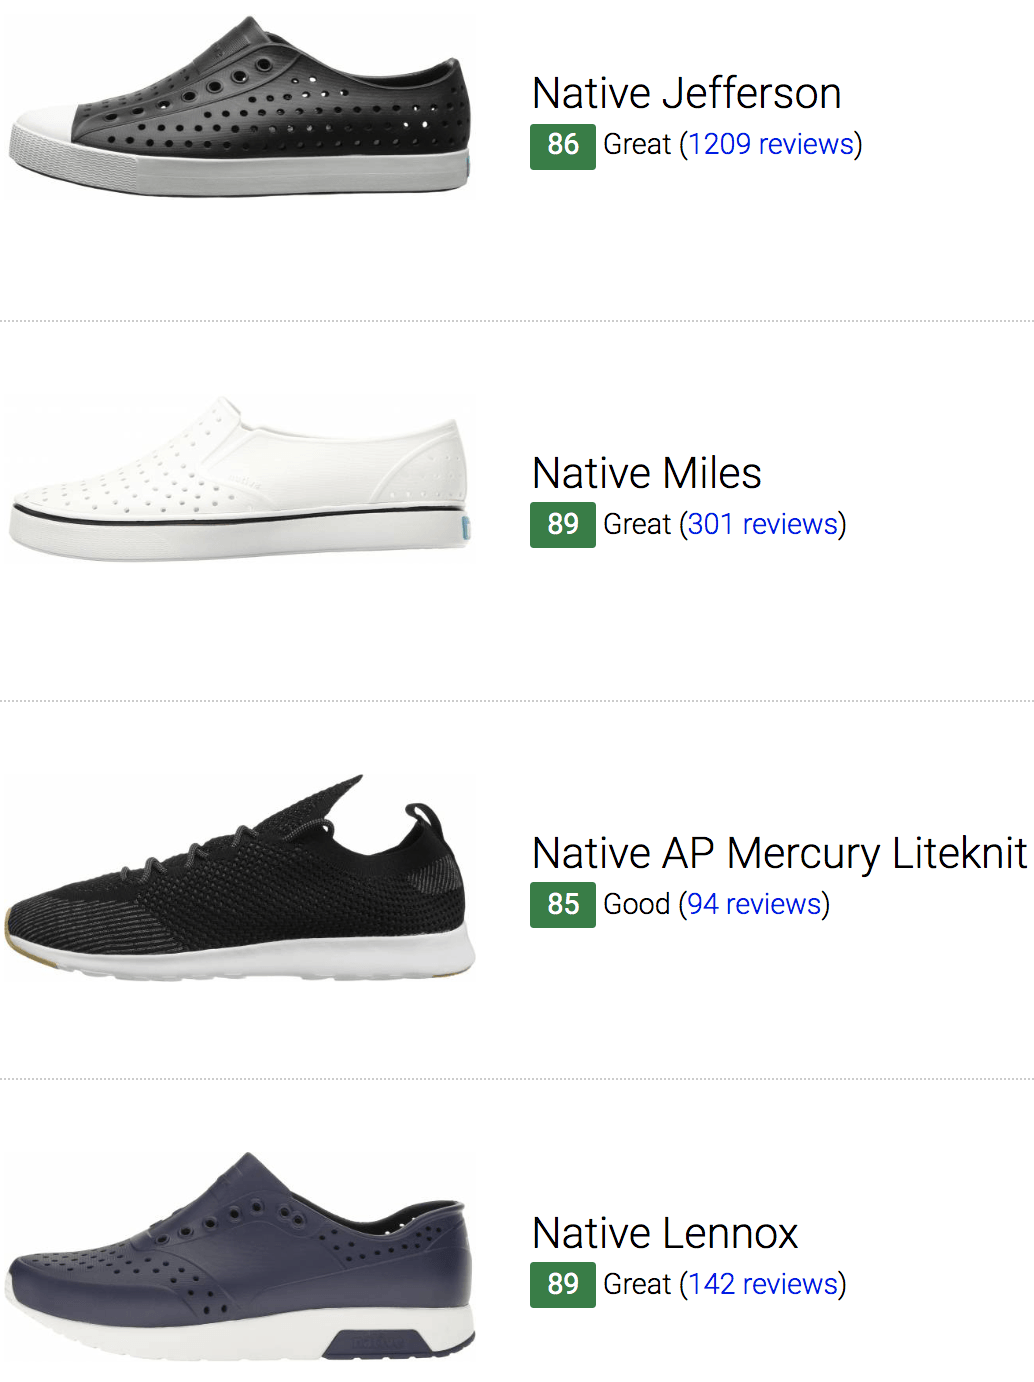 47bfc66c2 25 Best Native Sneakers (July 2019) | RunRepeat